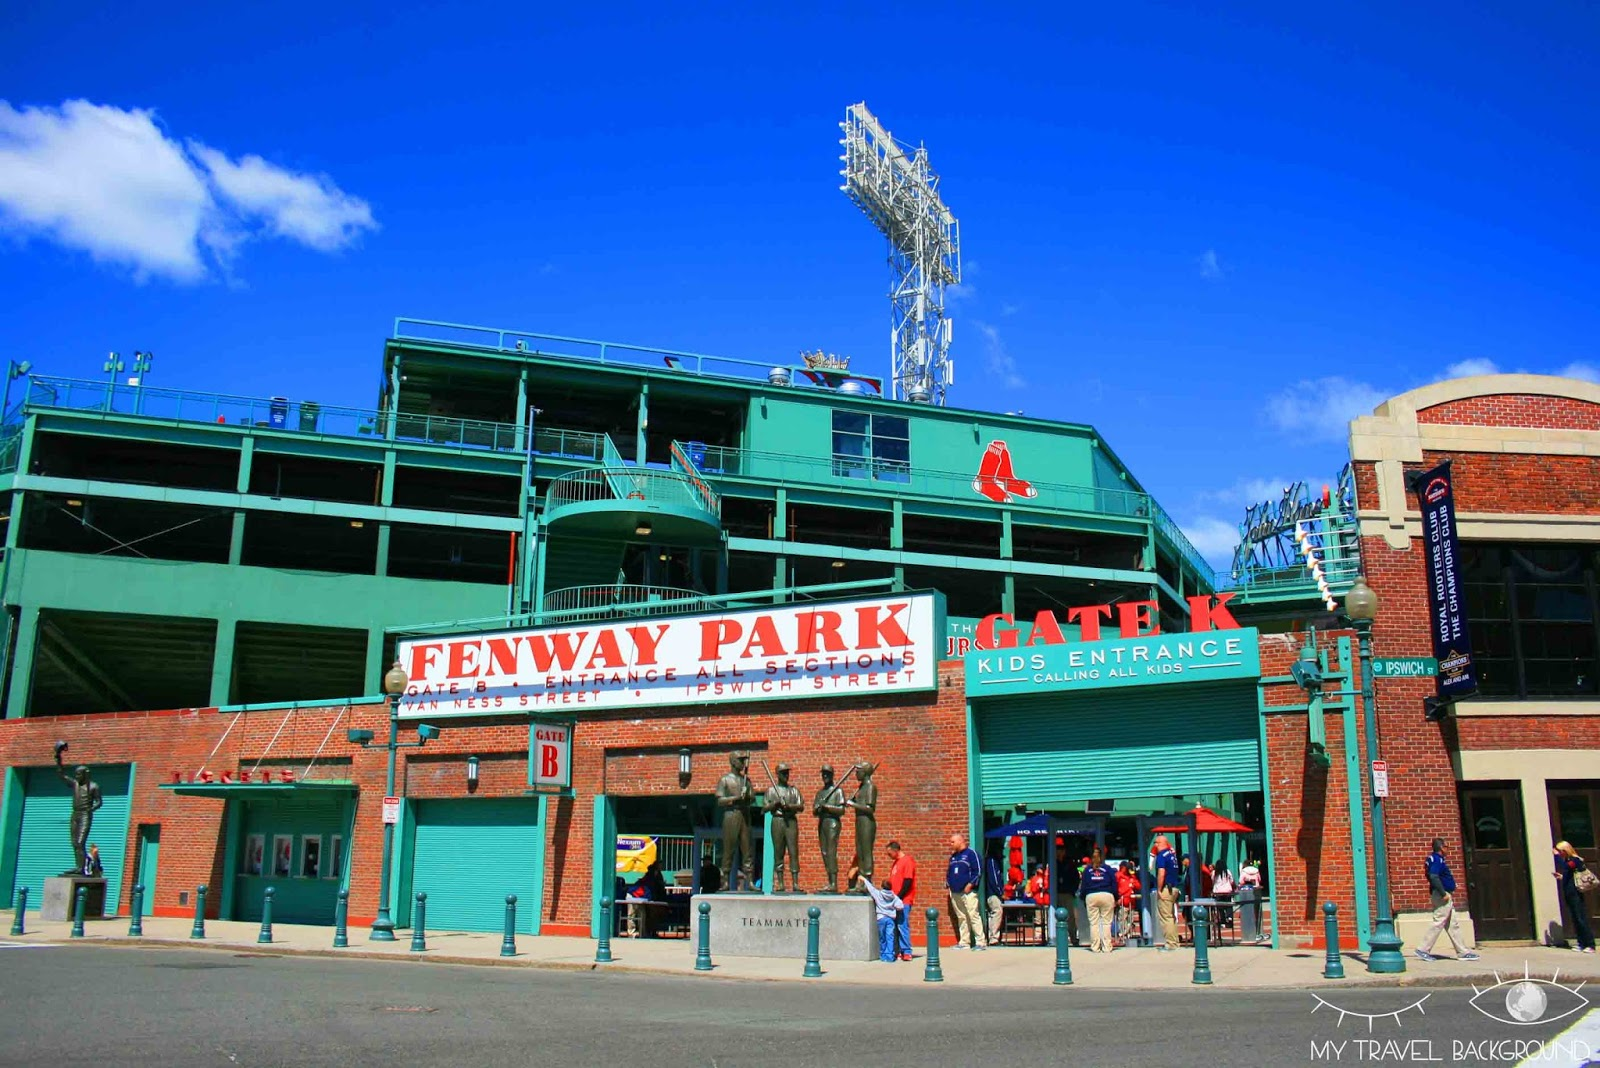 My Travel Background : le Fenway Park, le stade des Boston Red Sox